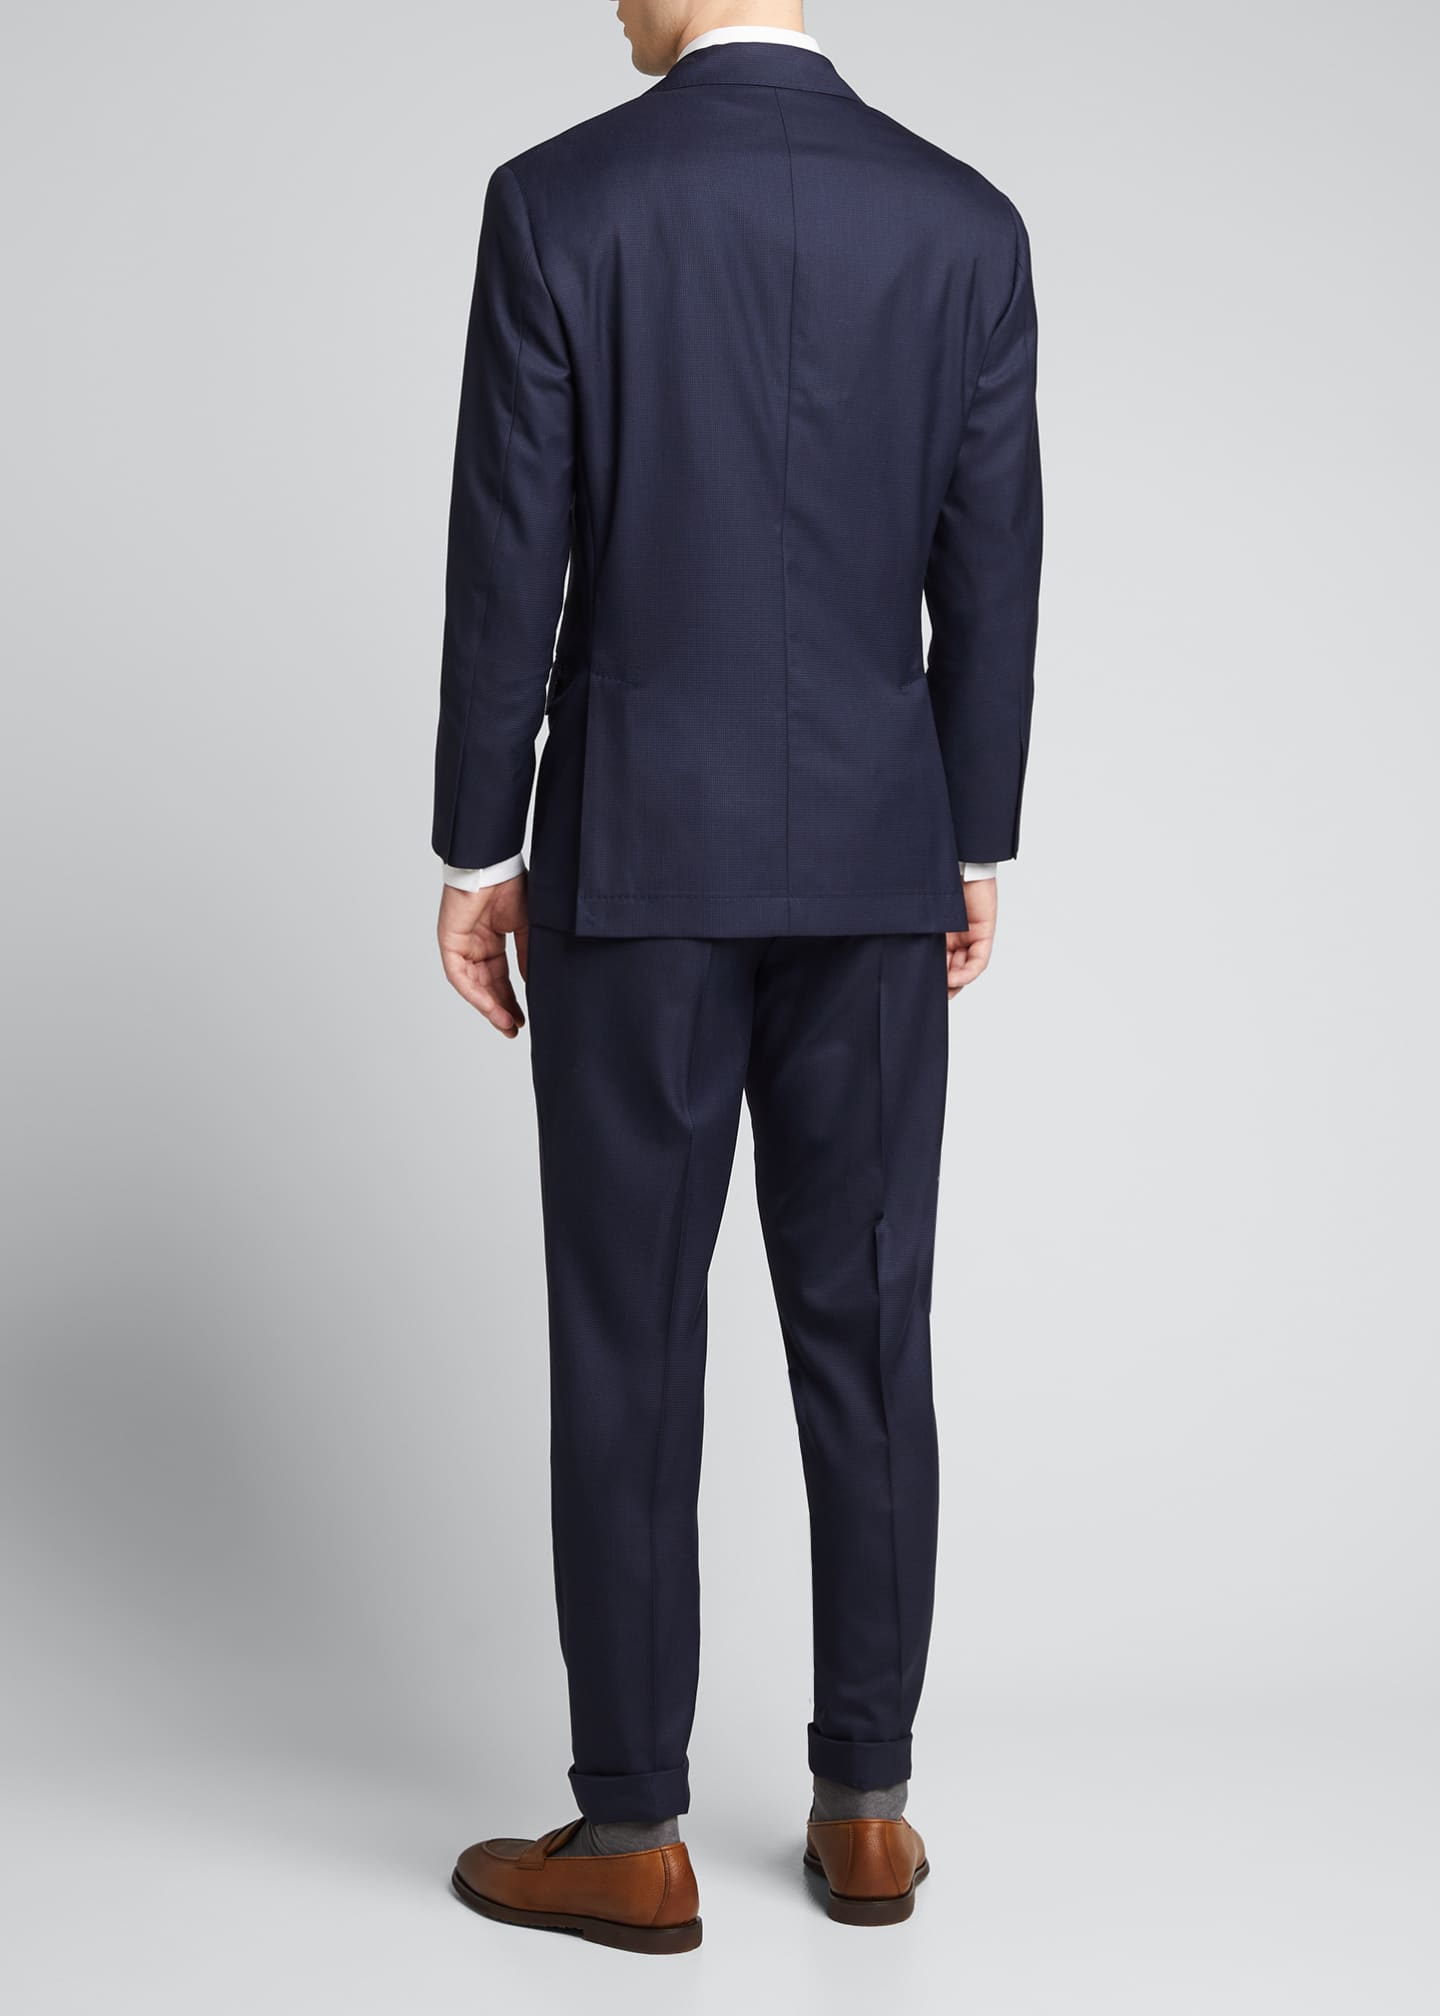 Image 2 of 5: Men's Houndstooth Wool Two-Piece Suit